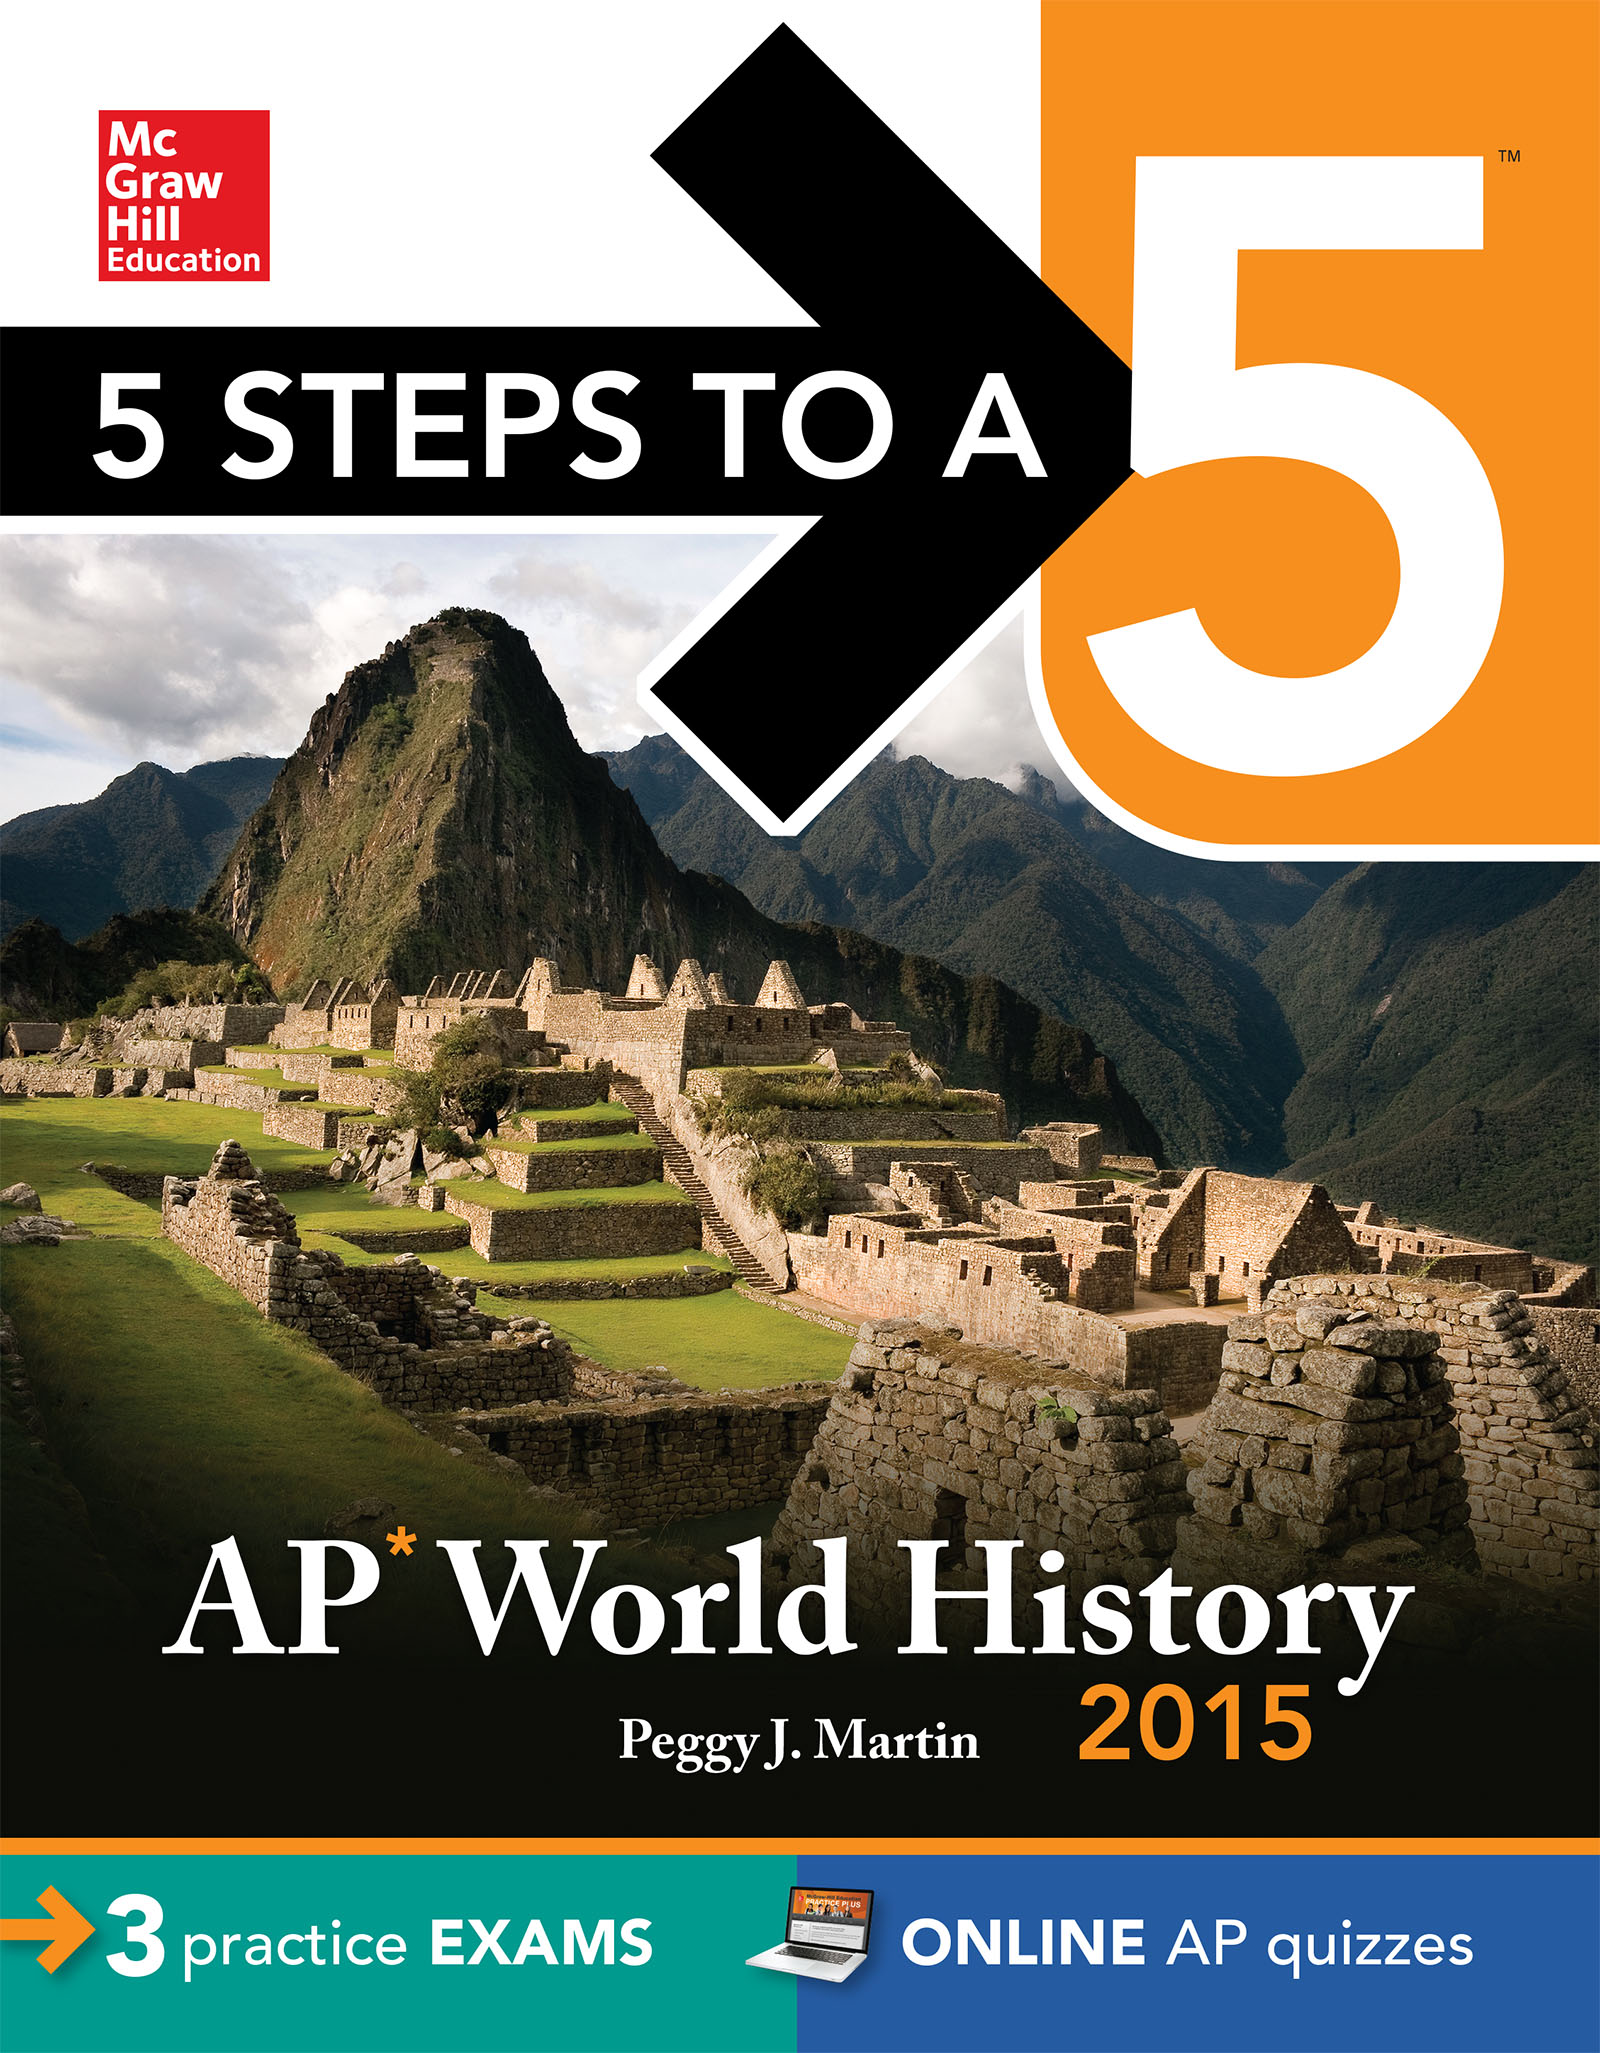 ap world history released essays 2013